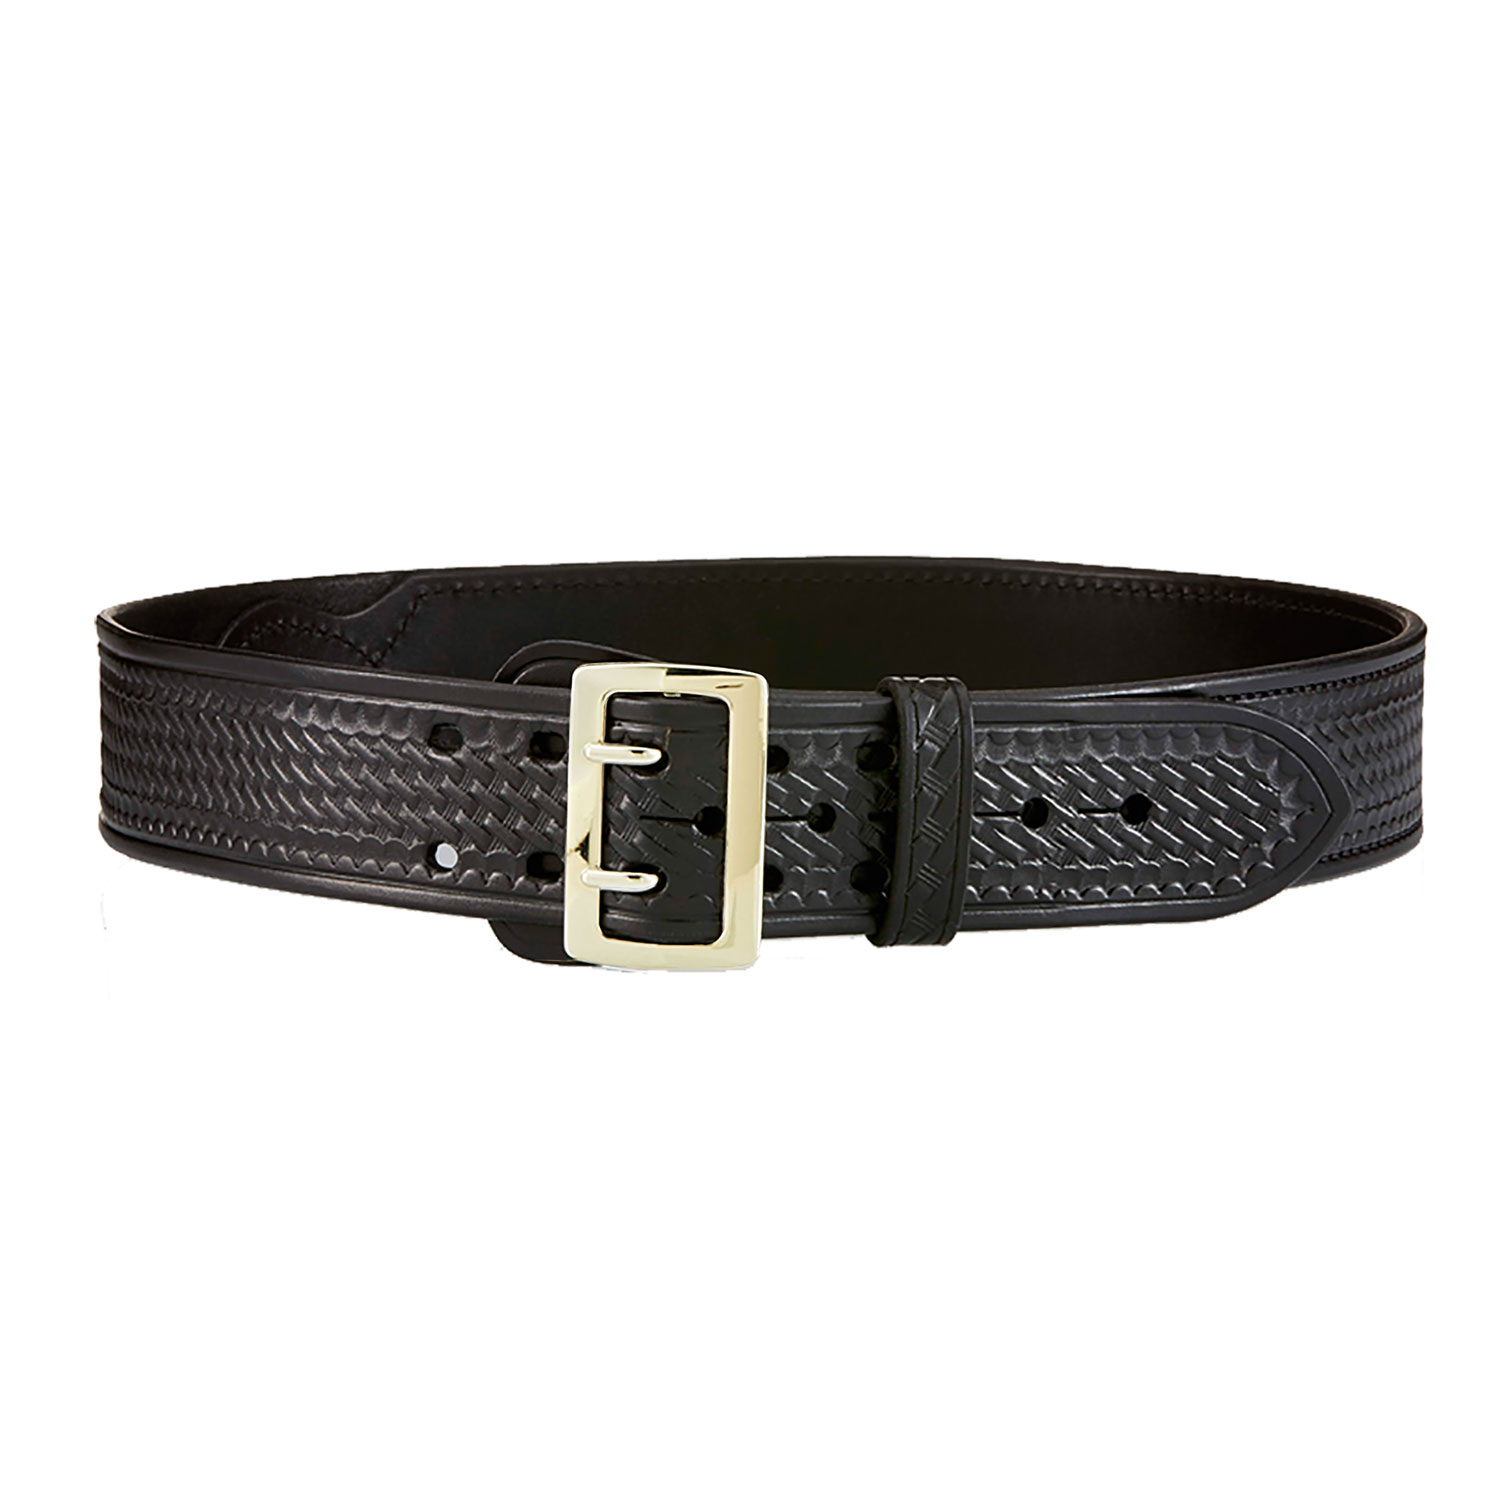 Aker Leather Sam Browne Belt